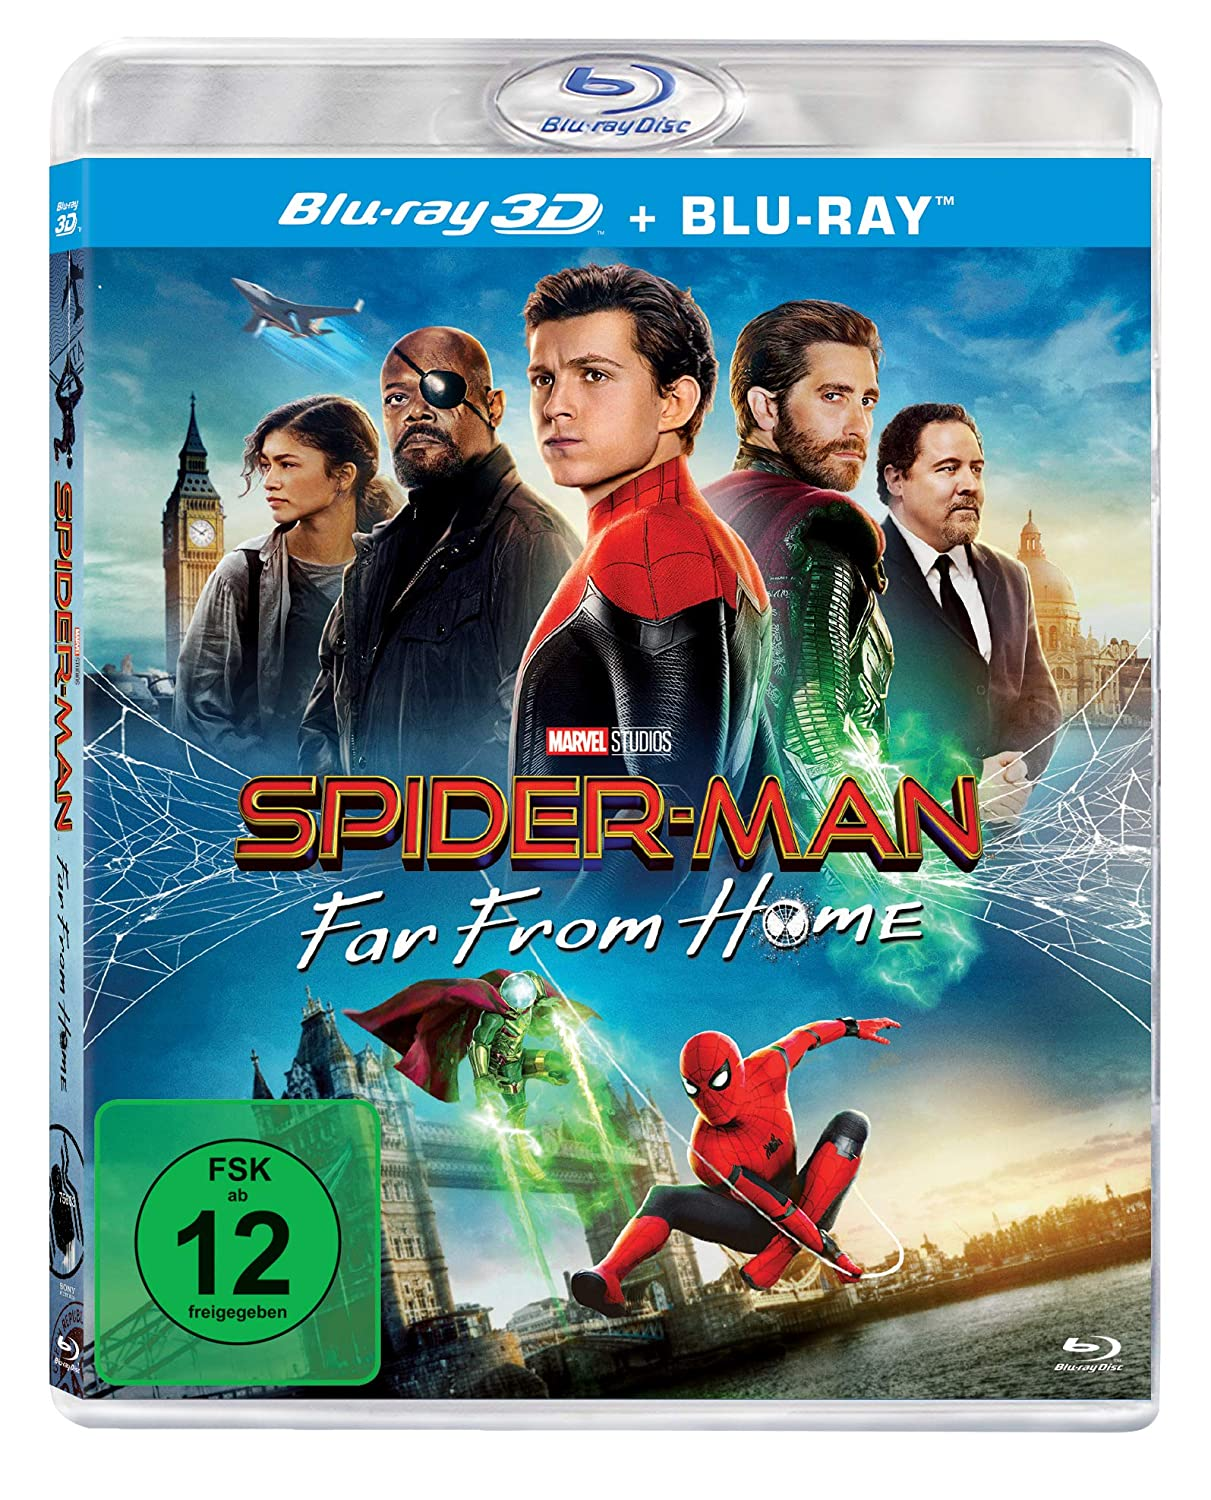 Spider-Man: Far from Home - 3D Version (2 Disc) [Blu-ray] [2019] [Region A & B & C]